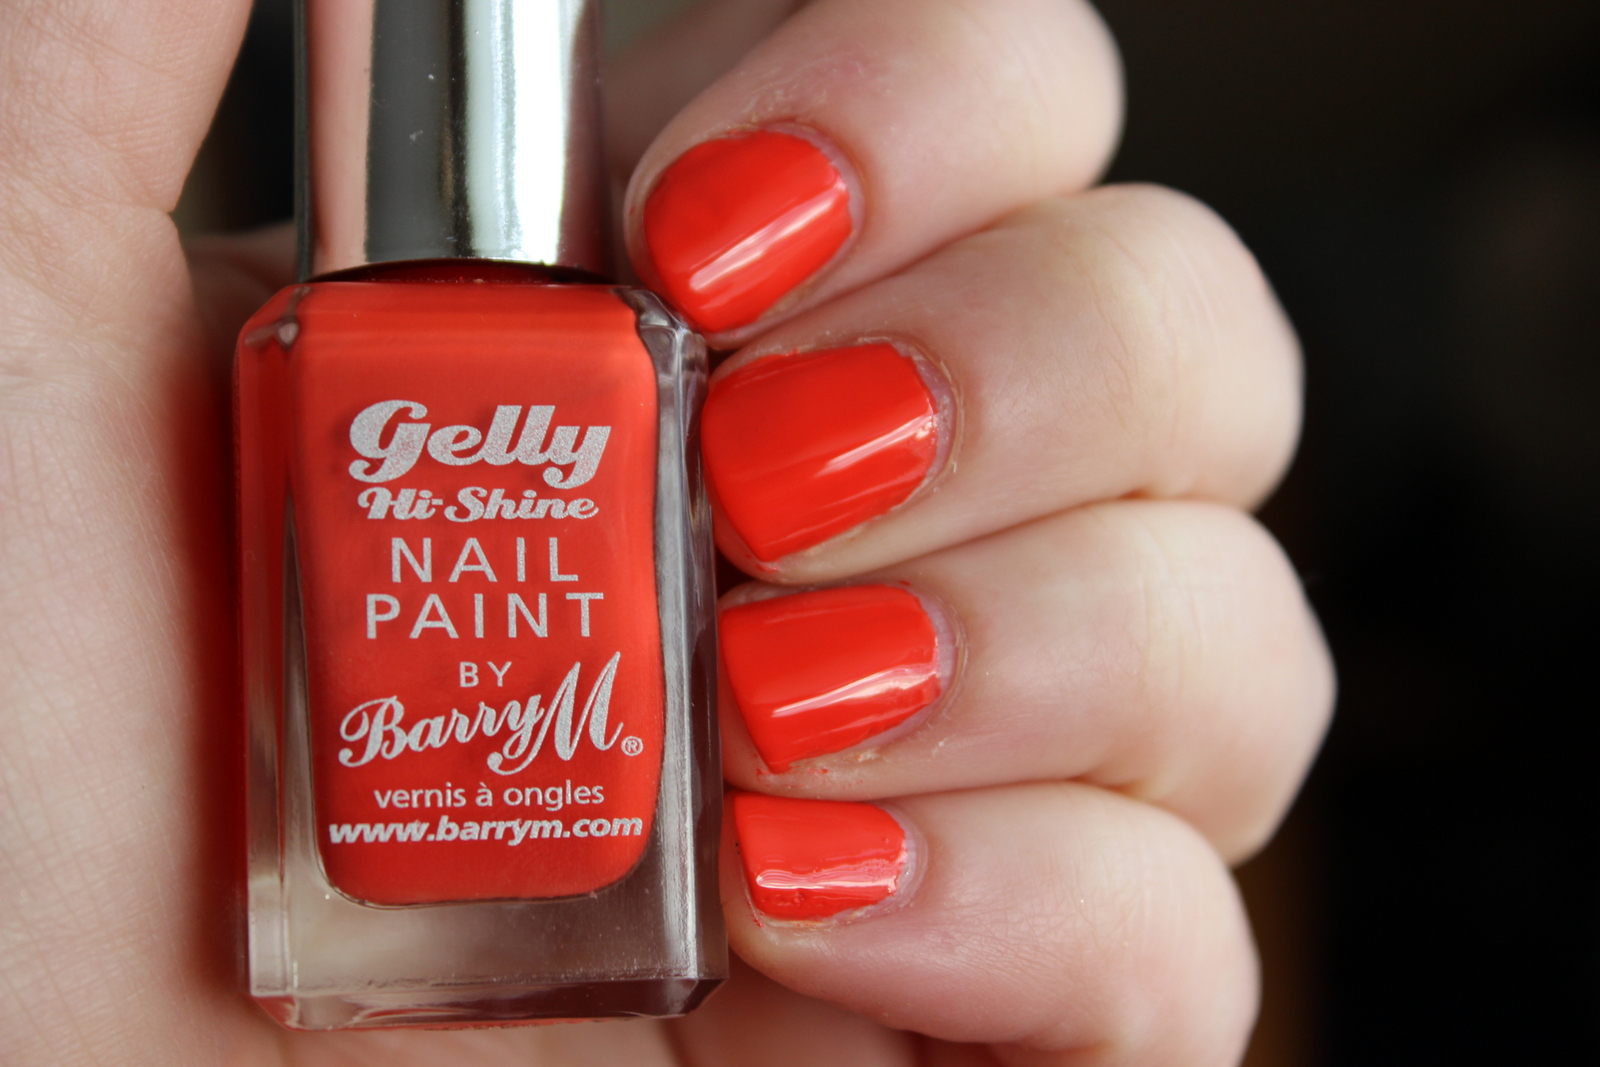 Barry M Gelly Hi-Shine Nail Paint - Satsuma - photos galore ...